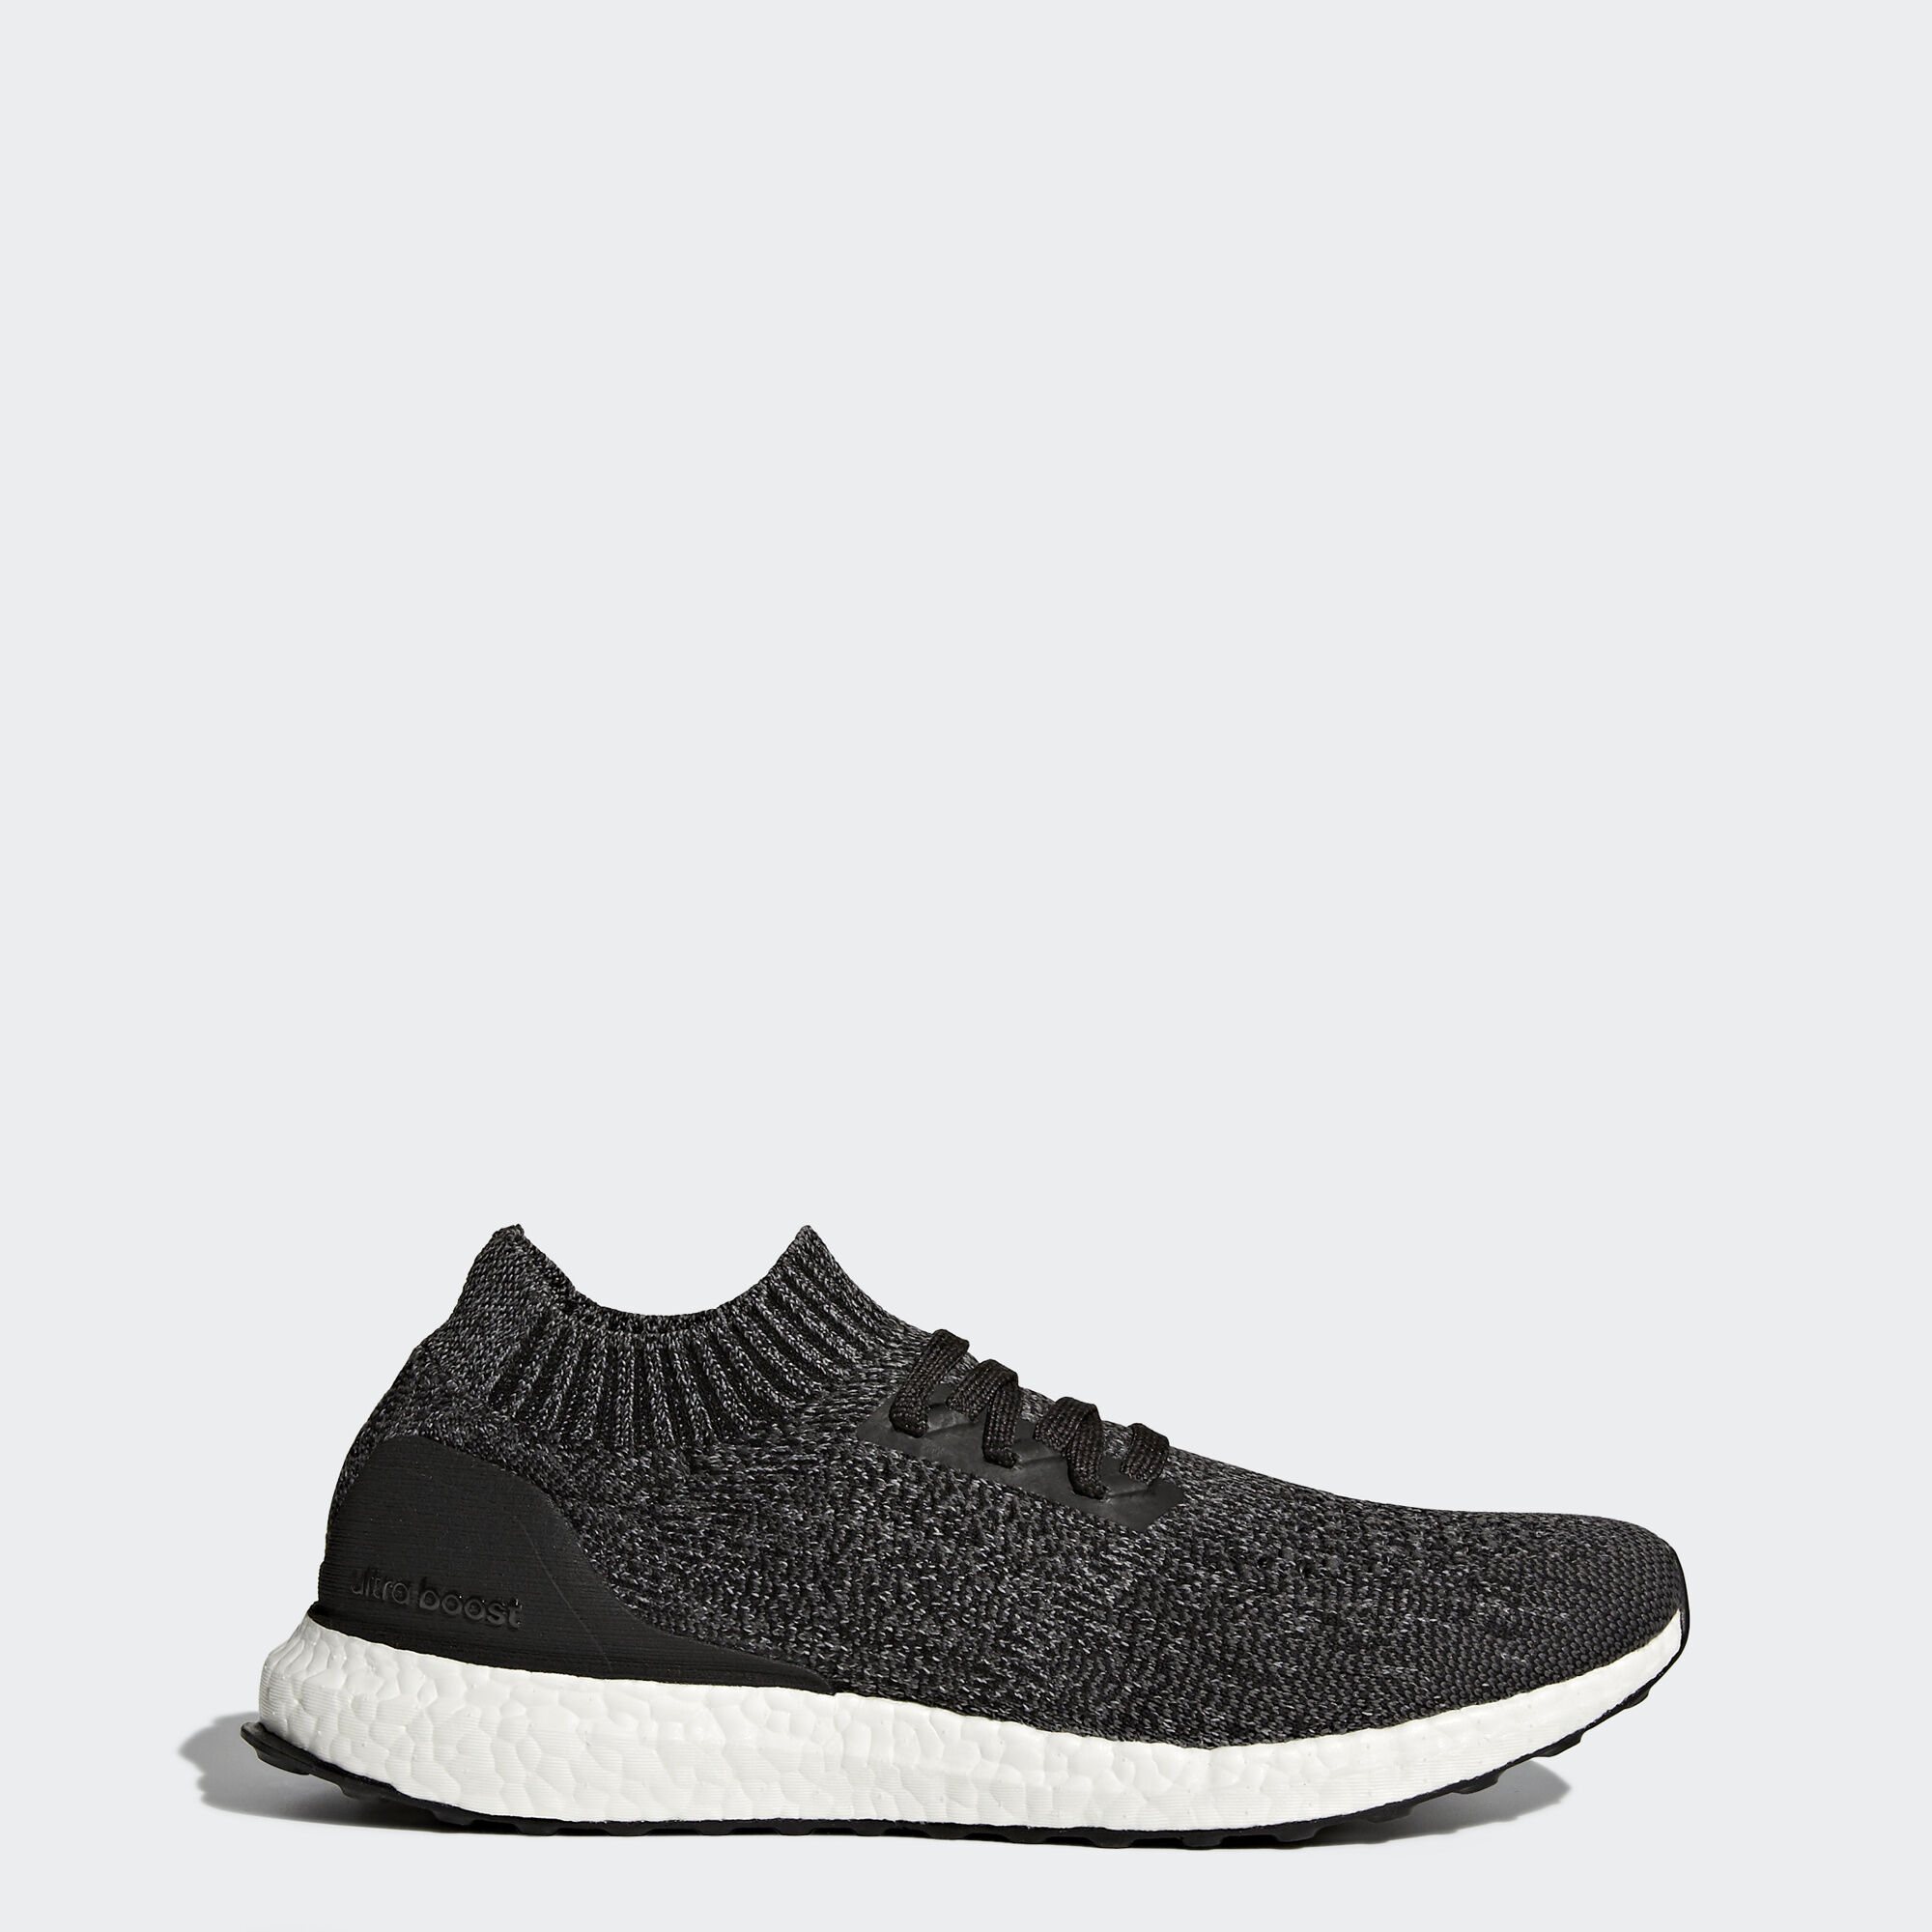 adidas ultra boost black shoes